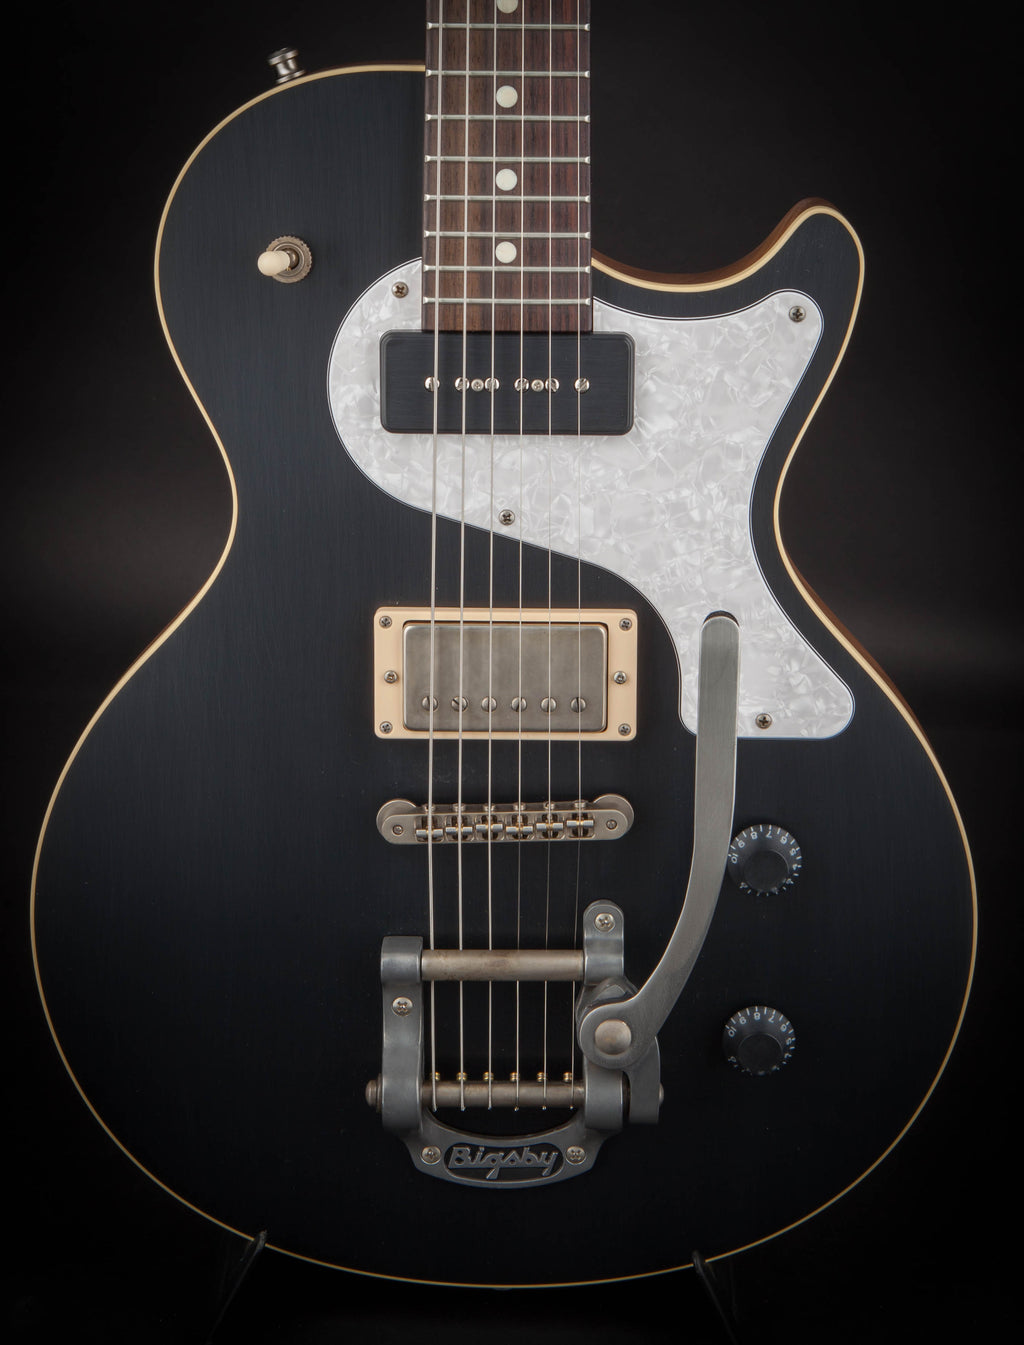 Nik Huber Krautster II Custom Onyx Black with Bigsby #72508